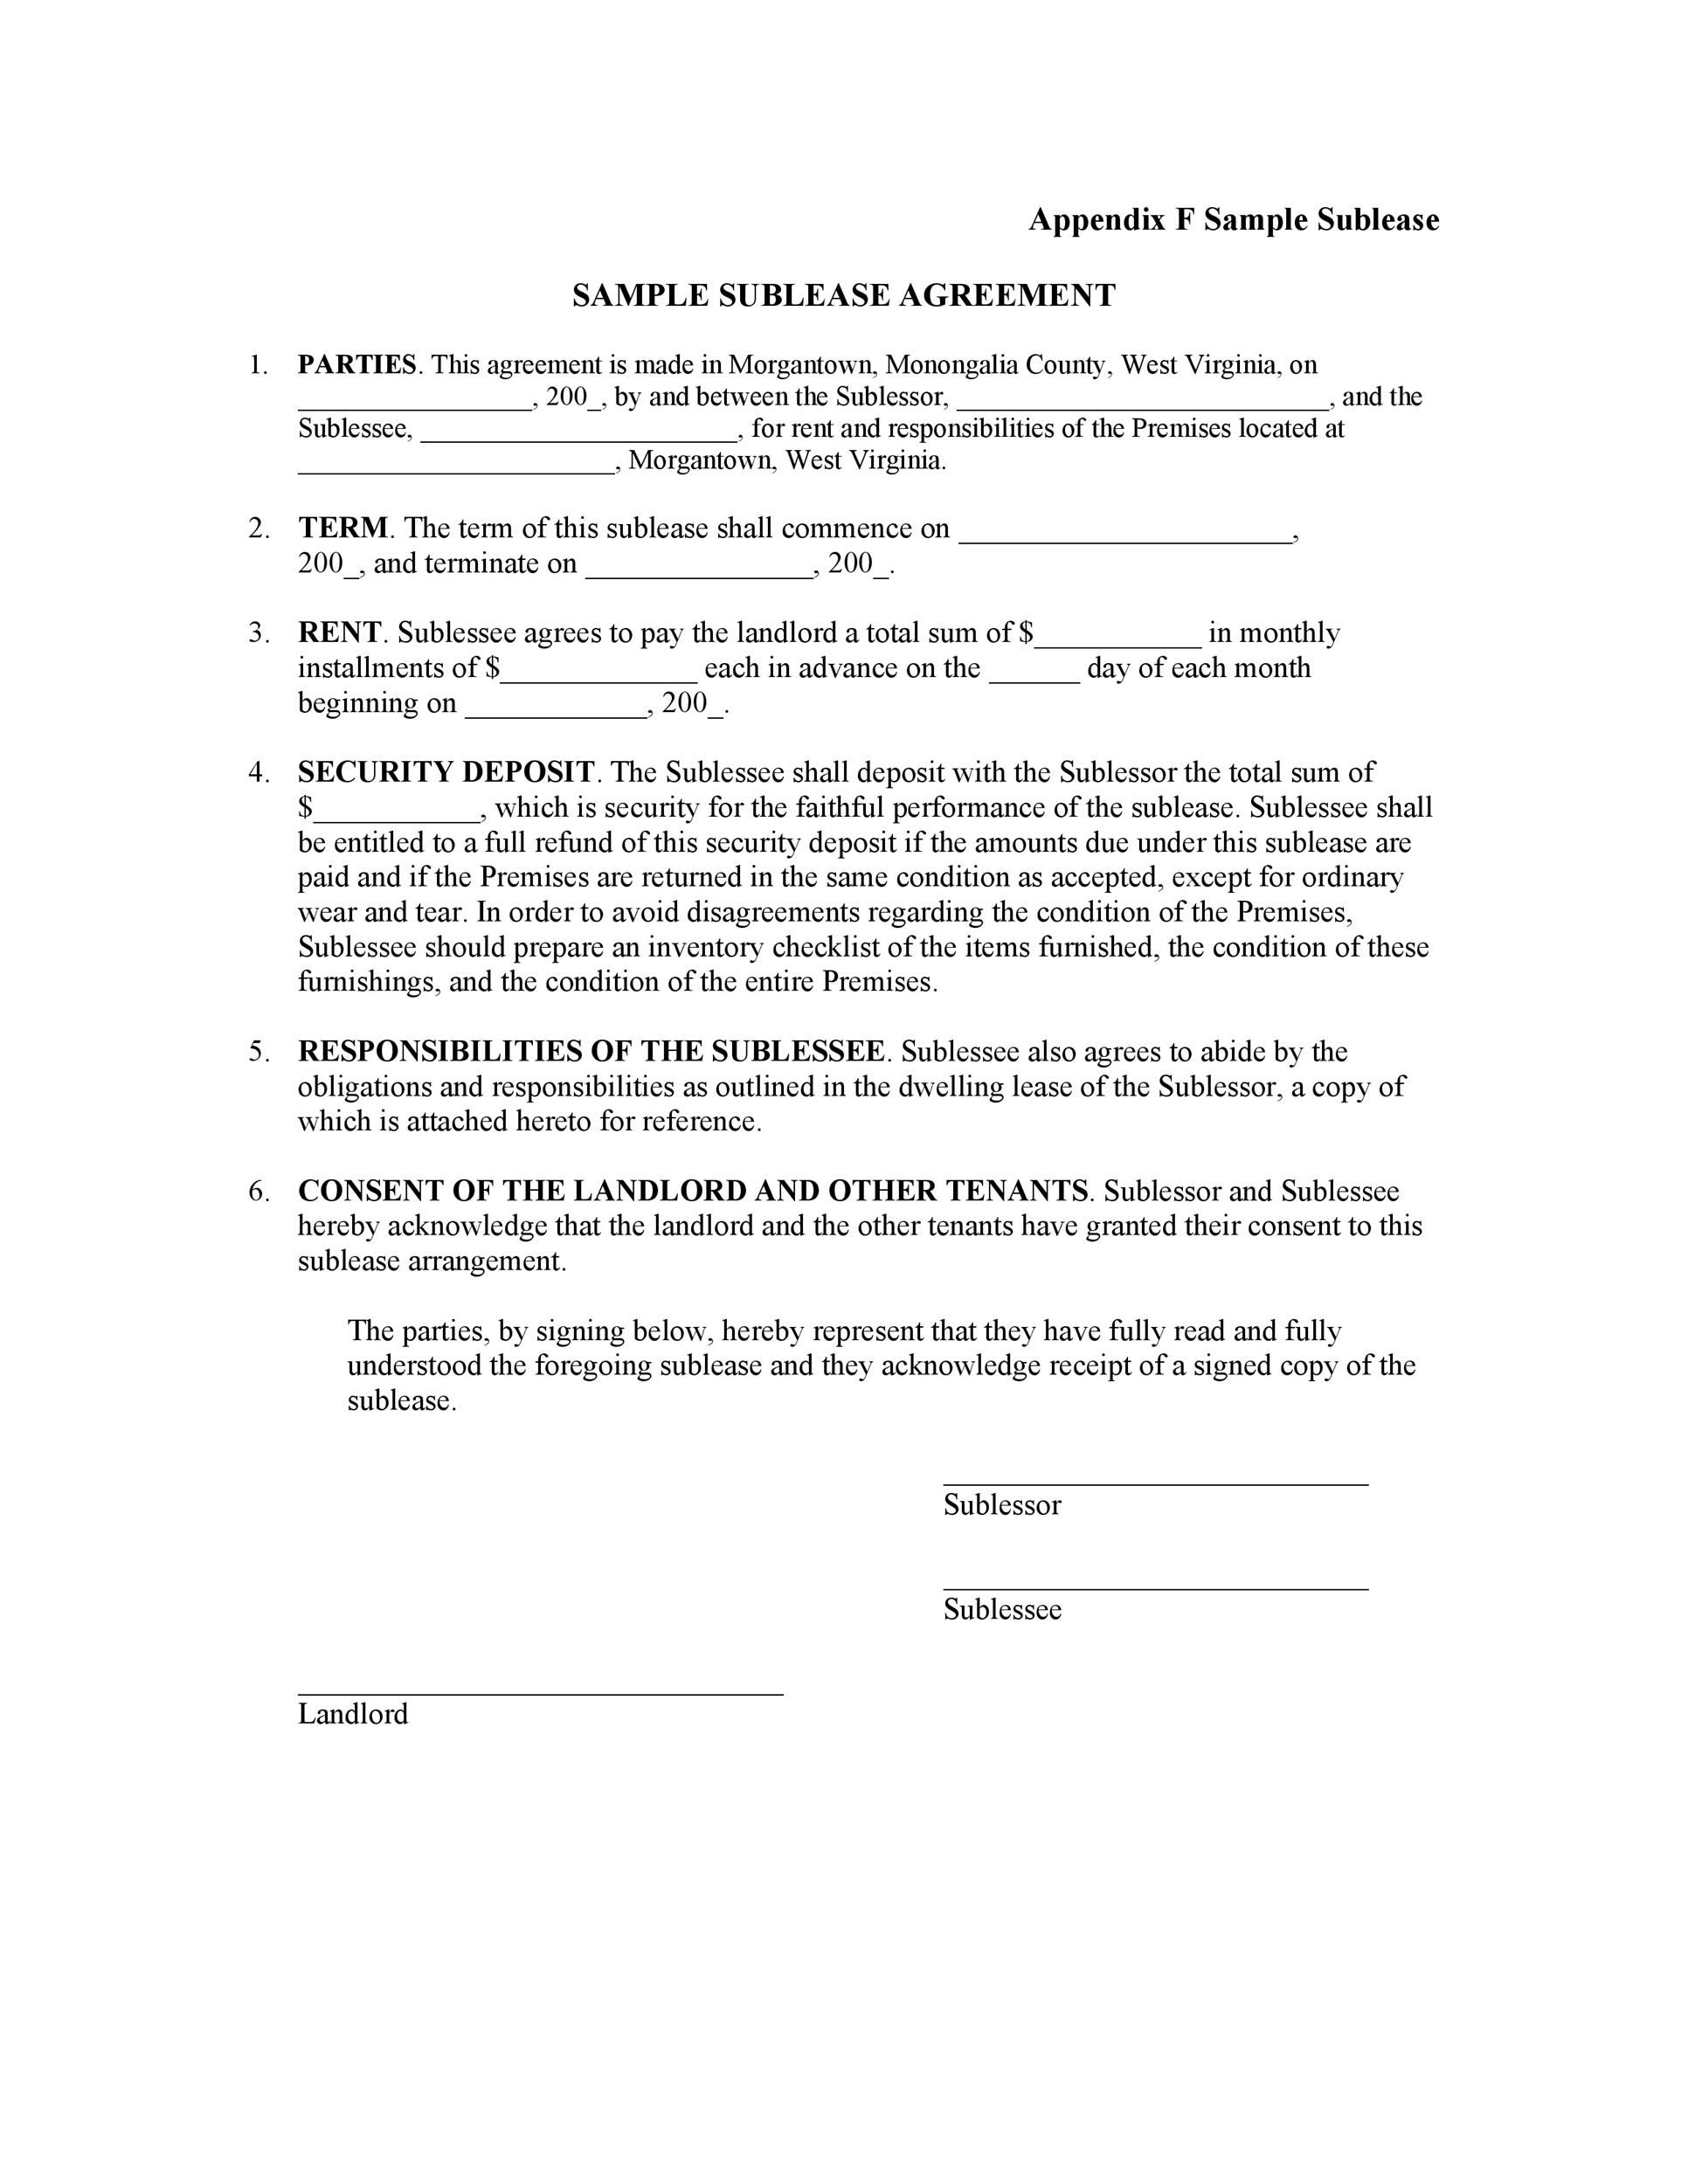 008 Impressive Free Sublease Agreement Template Pdf Image  Room Rental Car Form Residential LeaseFull